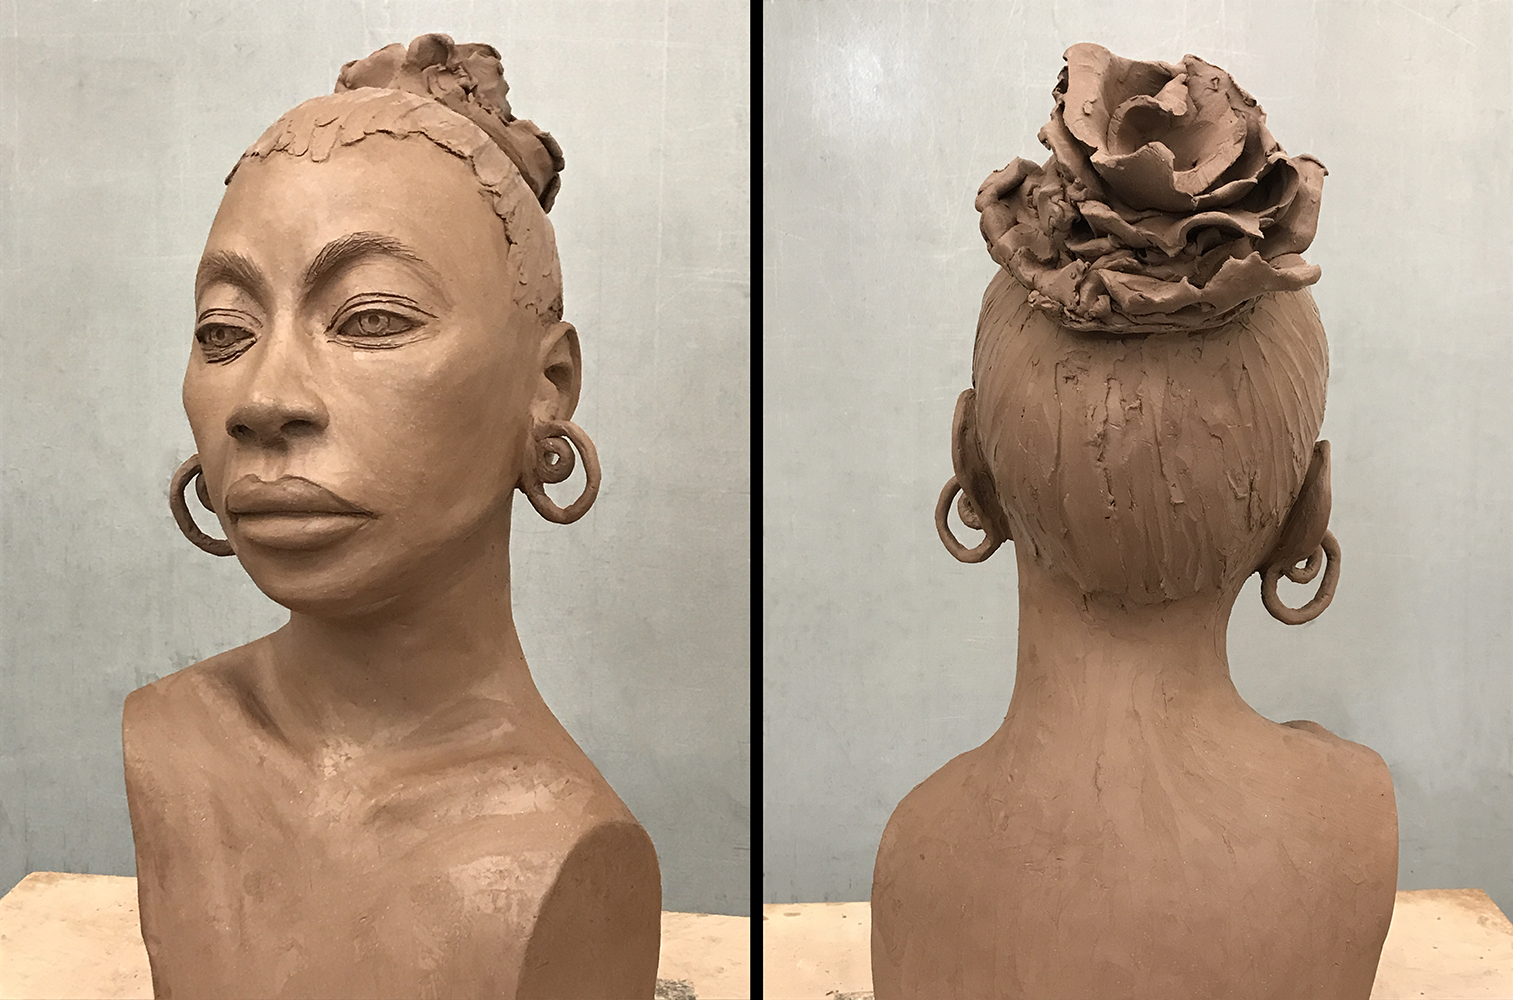 Indira-Cesarine-EARTH-GODDESS-Sculpture-in-Clay-front-back-view-lr.jpg